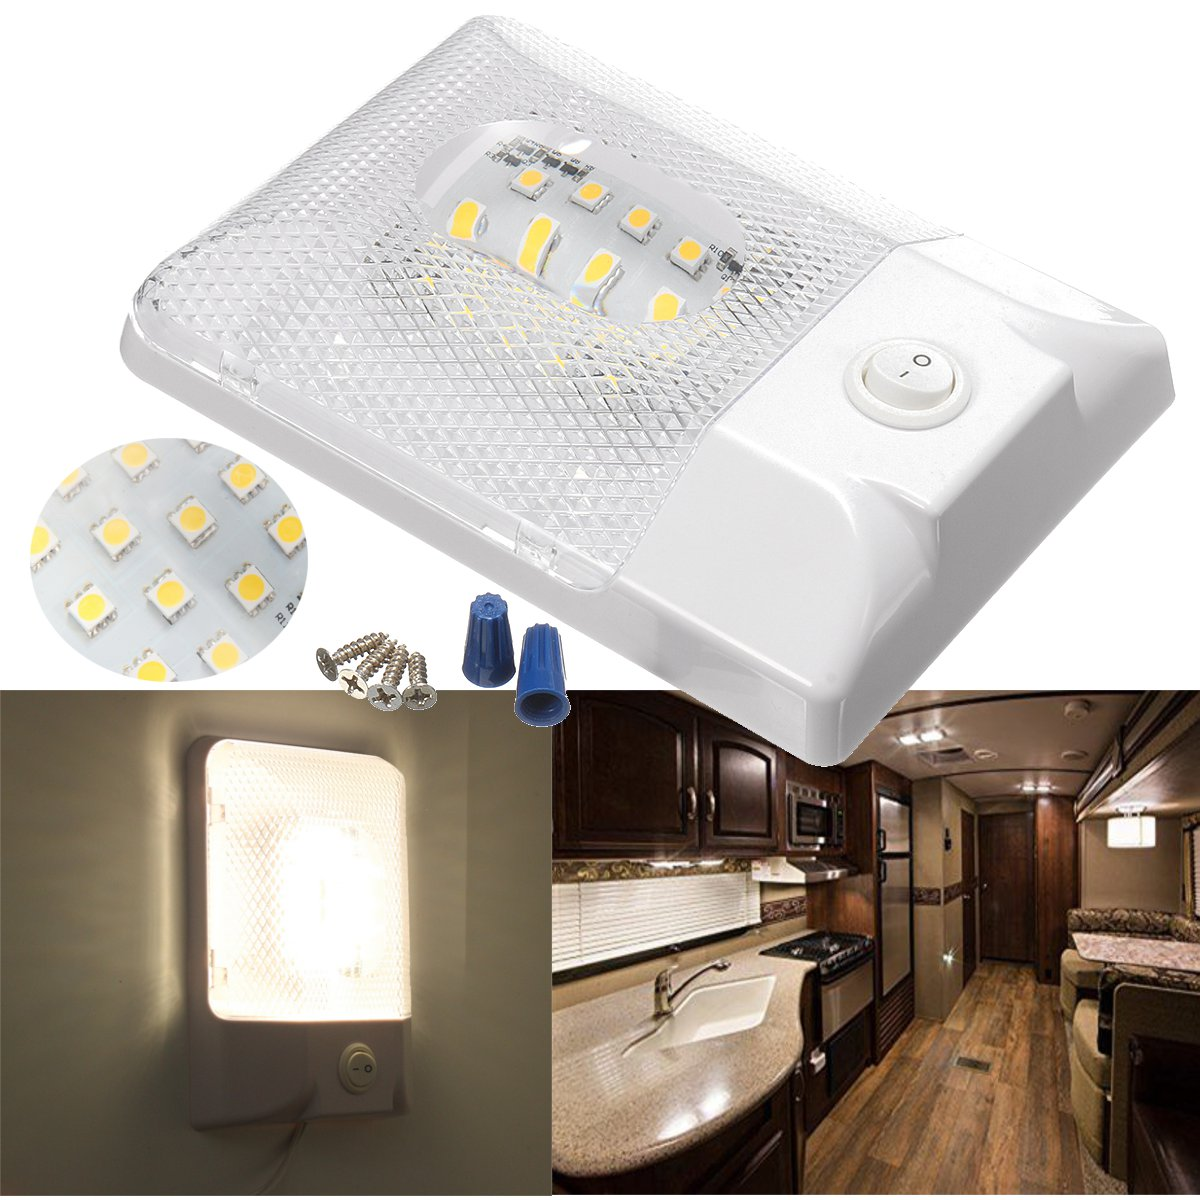 24LEDs Ceiling Light Interior Single Dome Ceiling Lights for RV Boat Camper Trailer